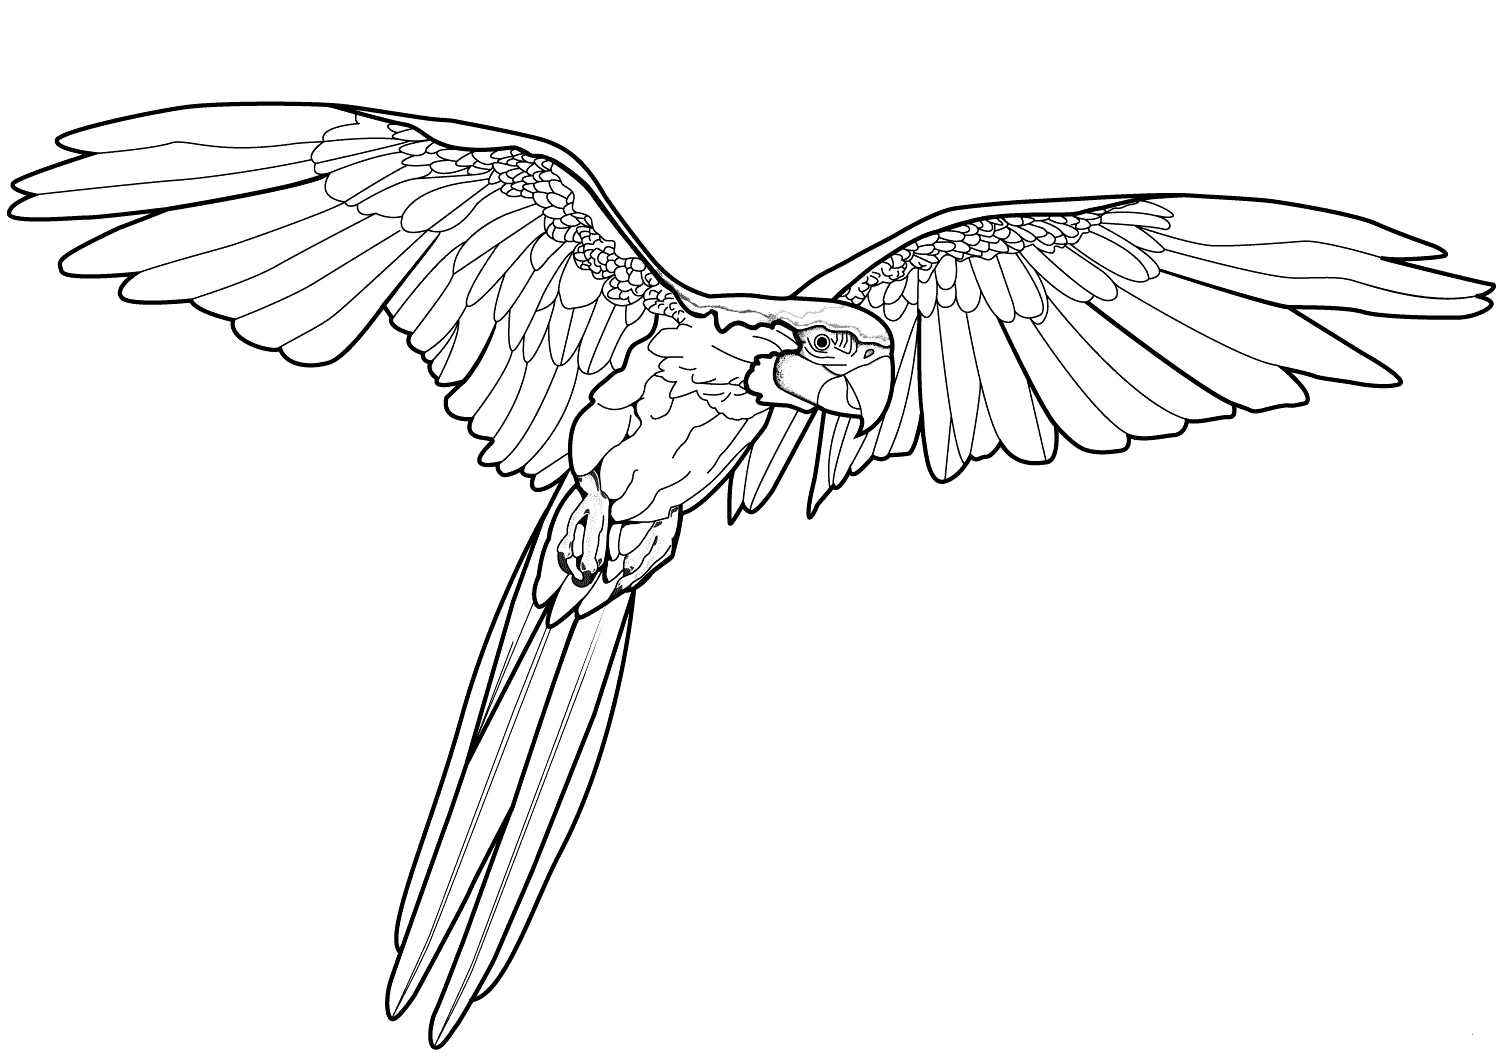 Parrot coloring page